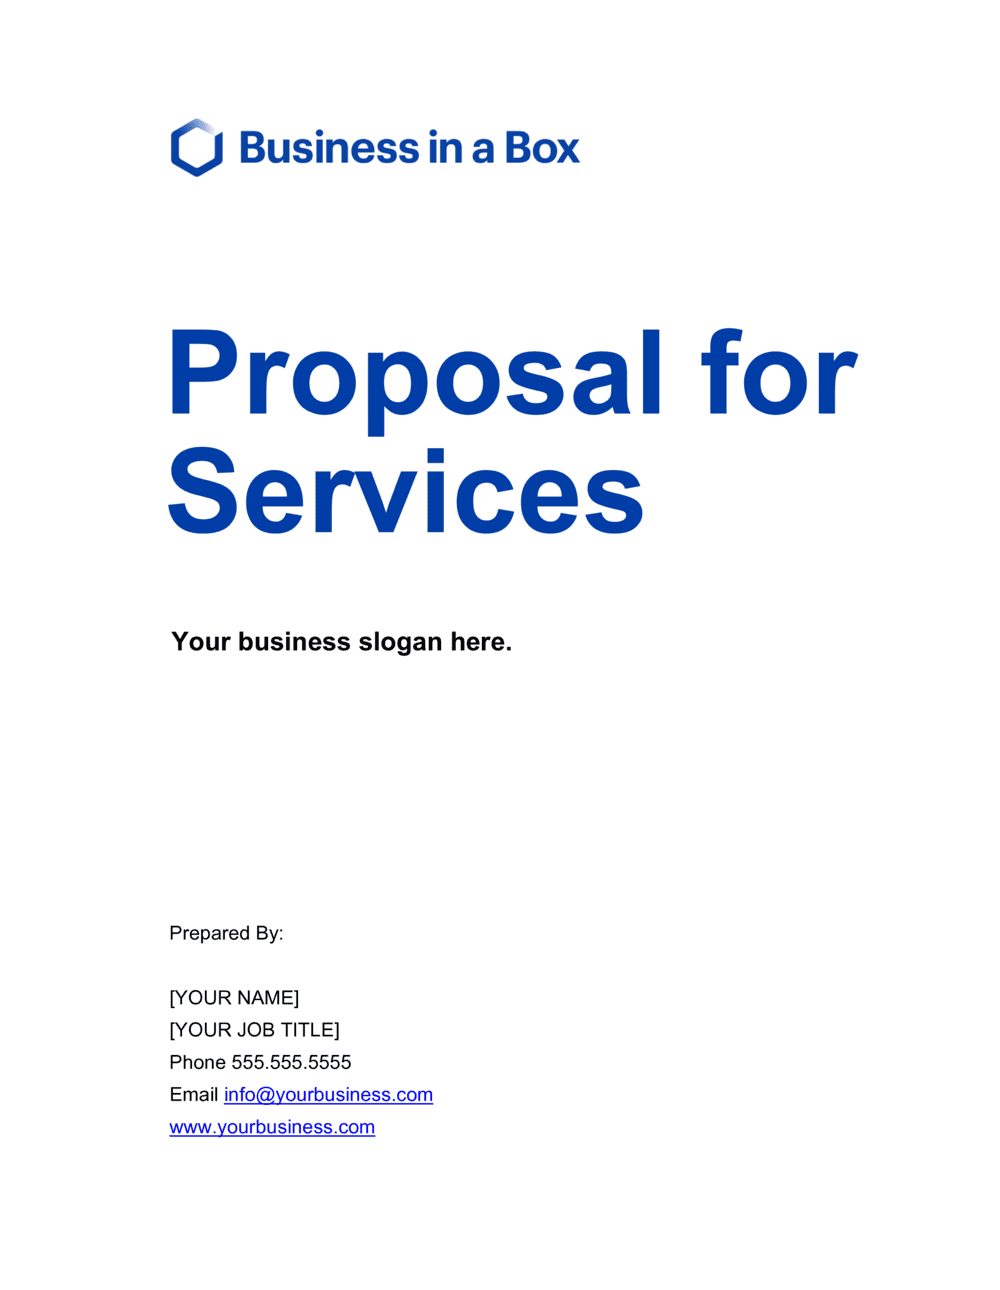 Sample Business Proposal Letter For Services from templates.business-in-a-box.com